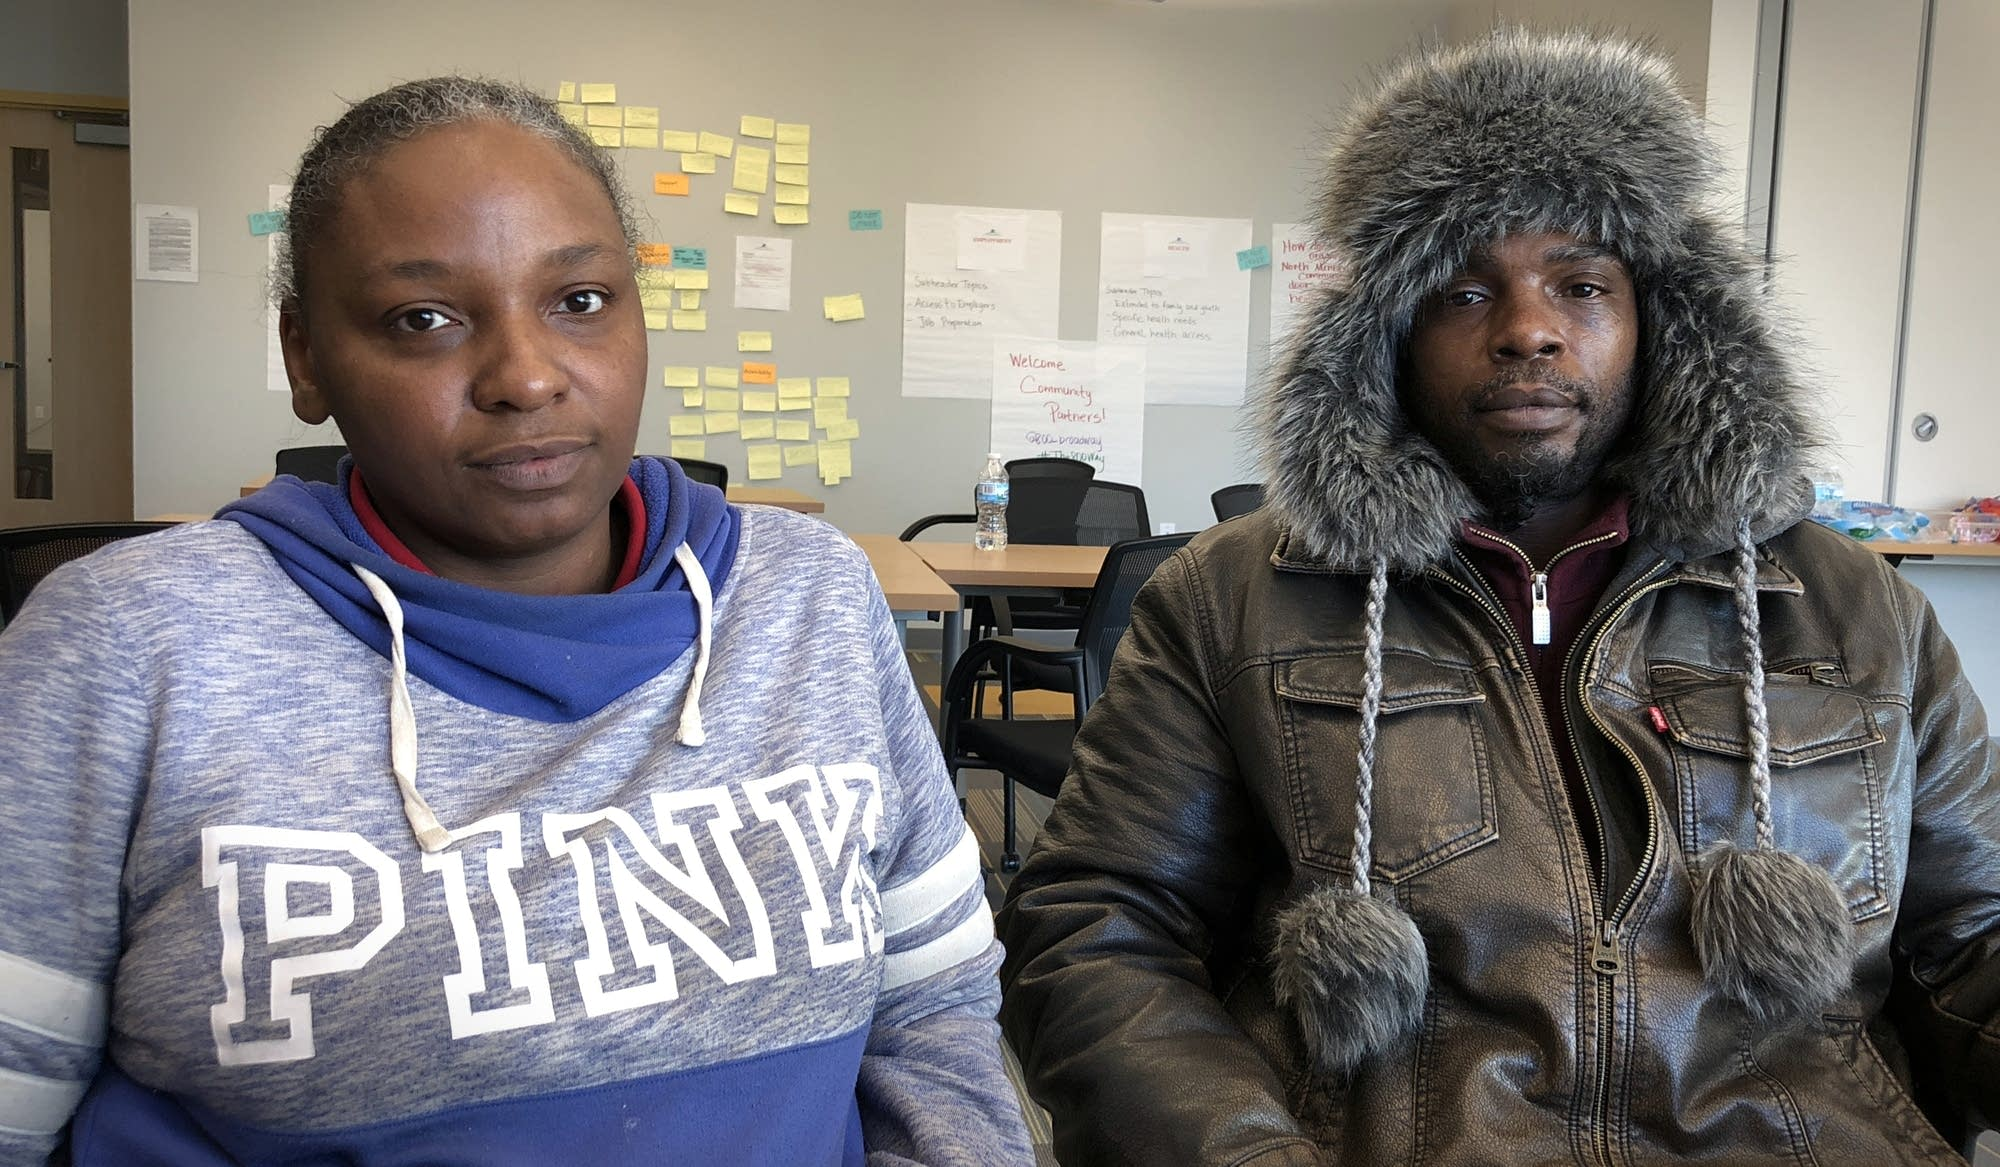 Lakesha Davis and Steven Perkins attend a free legal clinic in north Mpls.